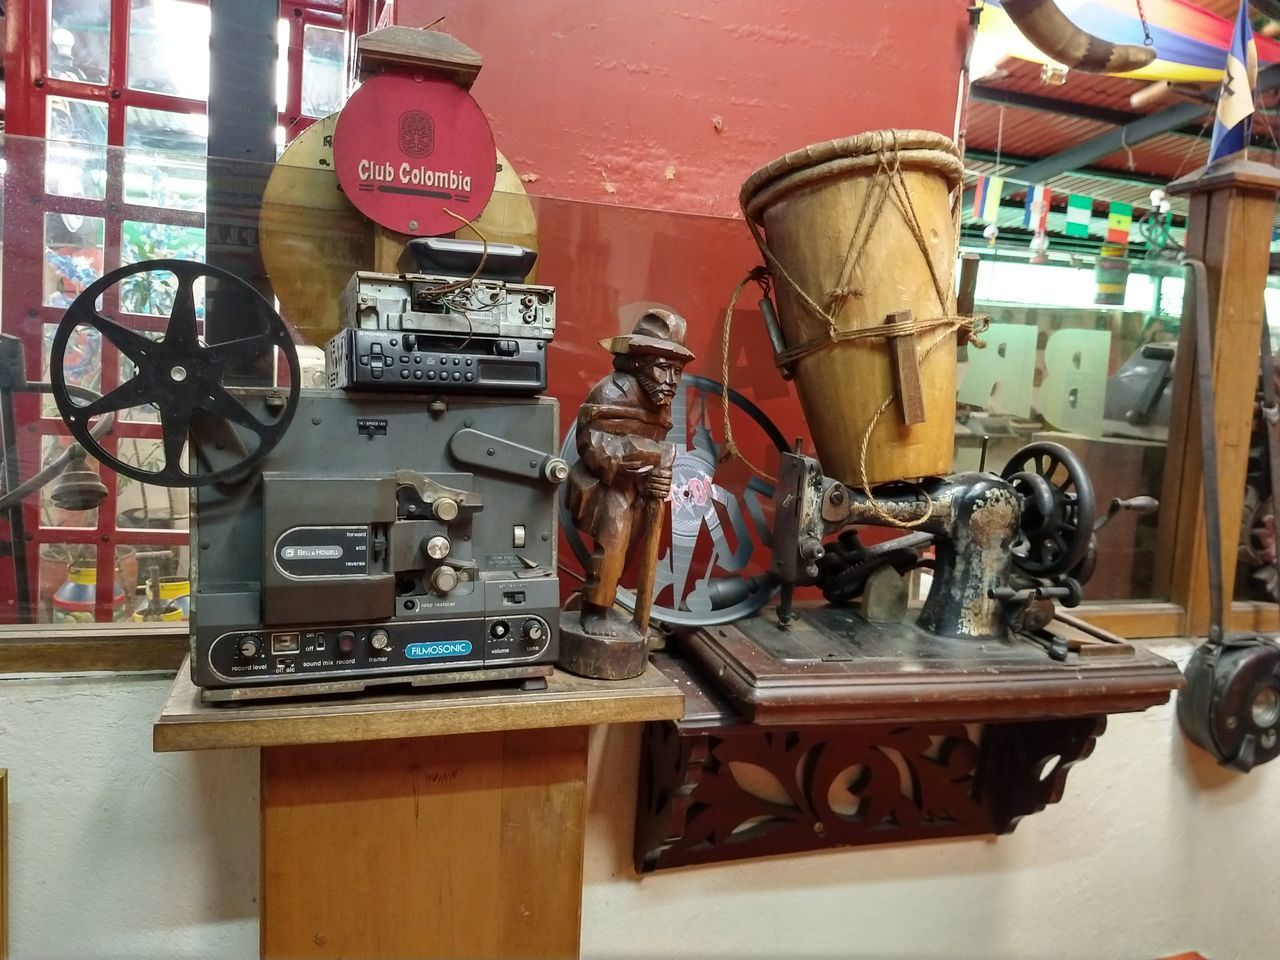 no people, technology, equipment, metal, indoors, machinery, day, wood - material, machine part, old, connection, industry, table, valve, close-up, retro styled, workshop, still life